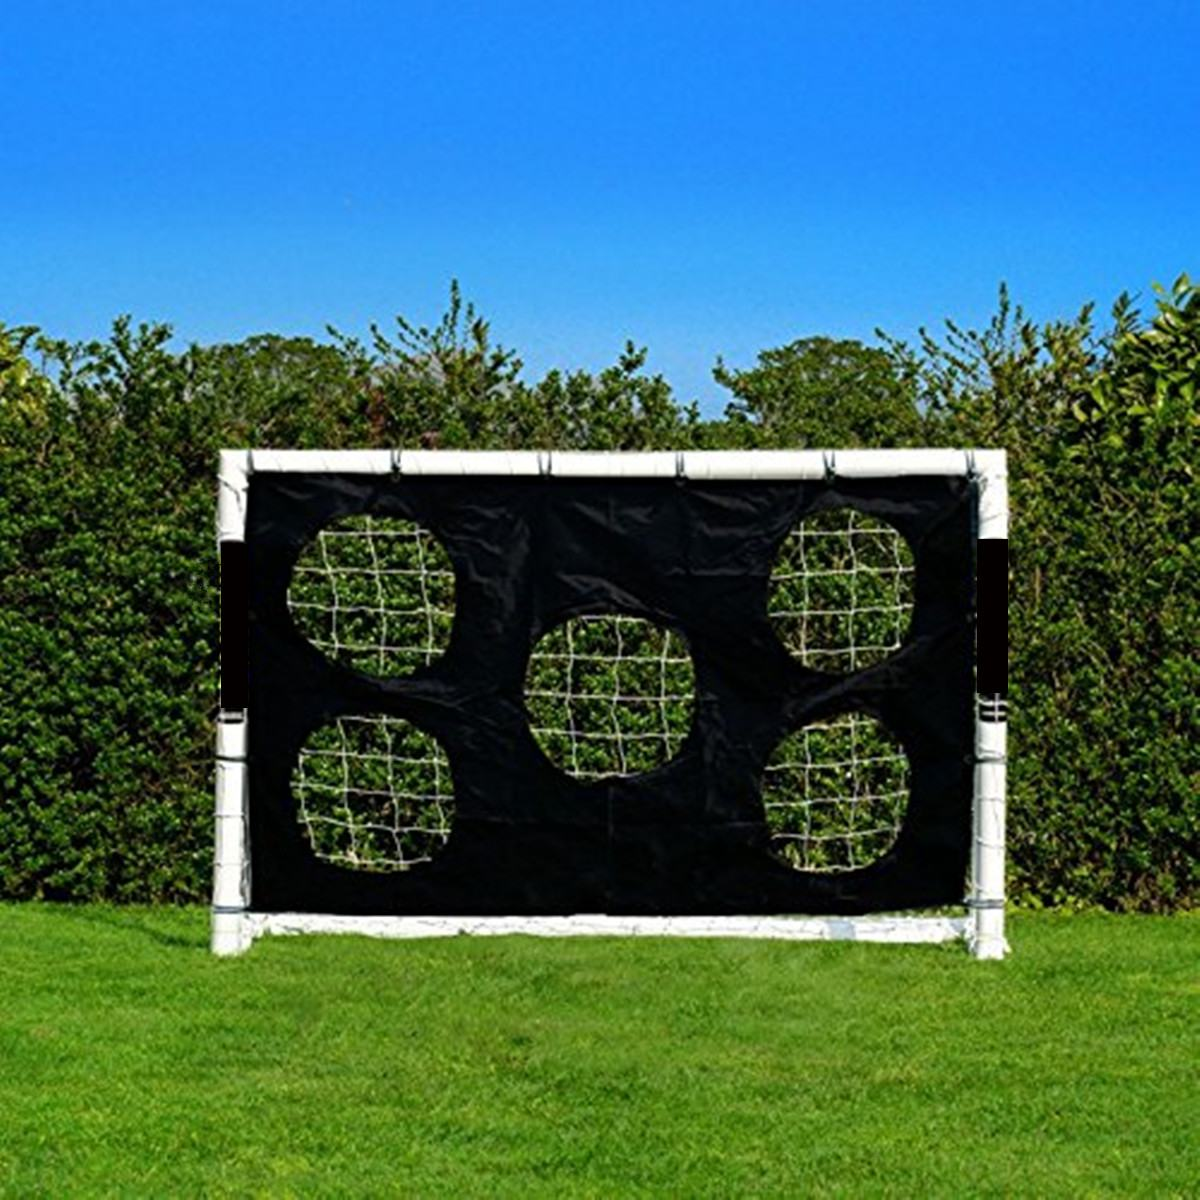 180X120cm Football Training Net Soccer Ball Goal Net Kids Child Birthday Gift Soccer Training Target Indoor Outdoor Sports Gate